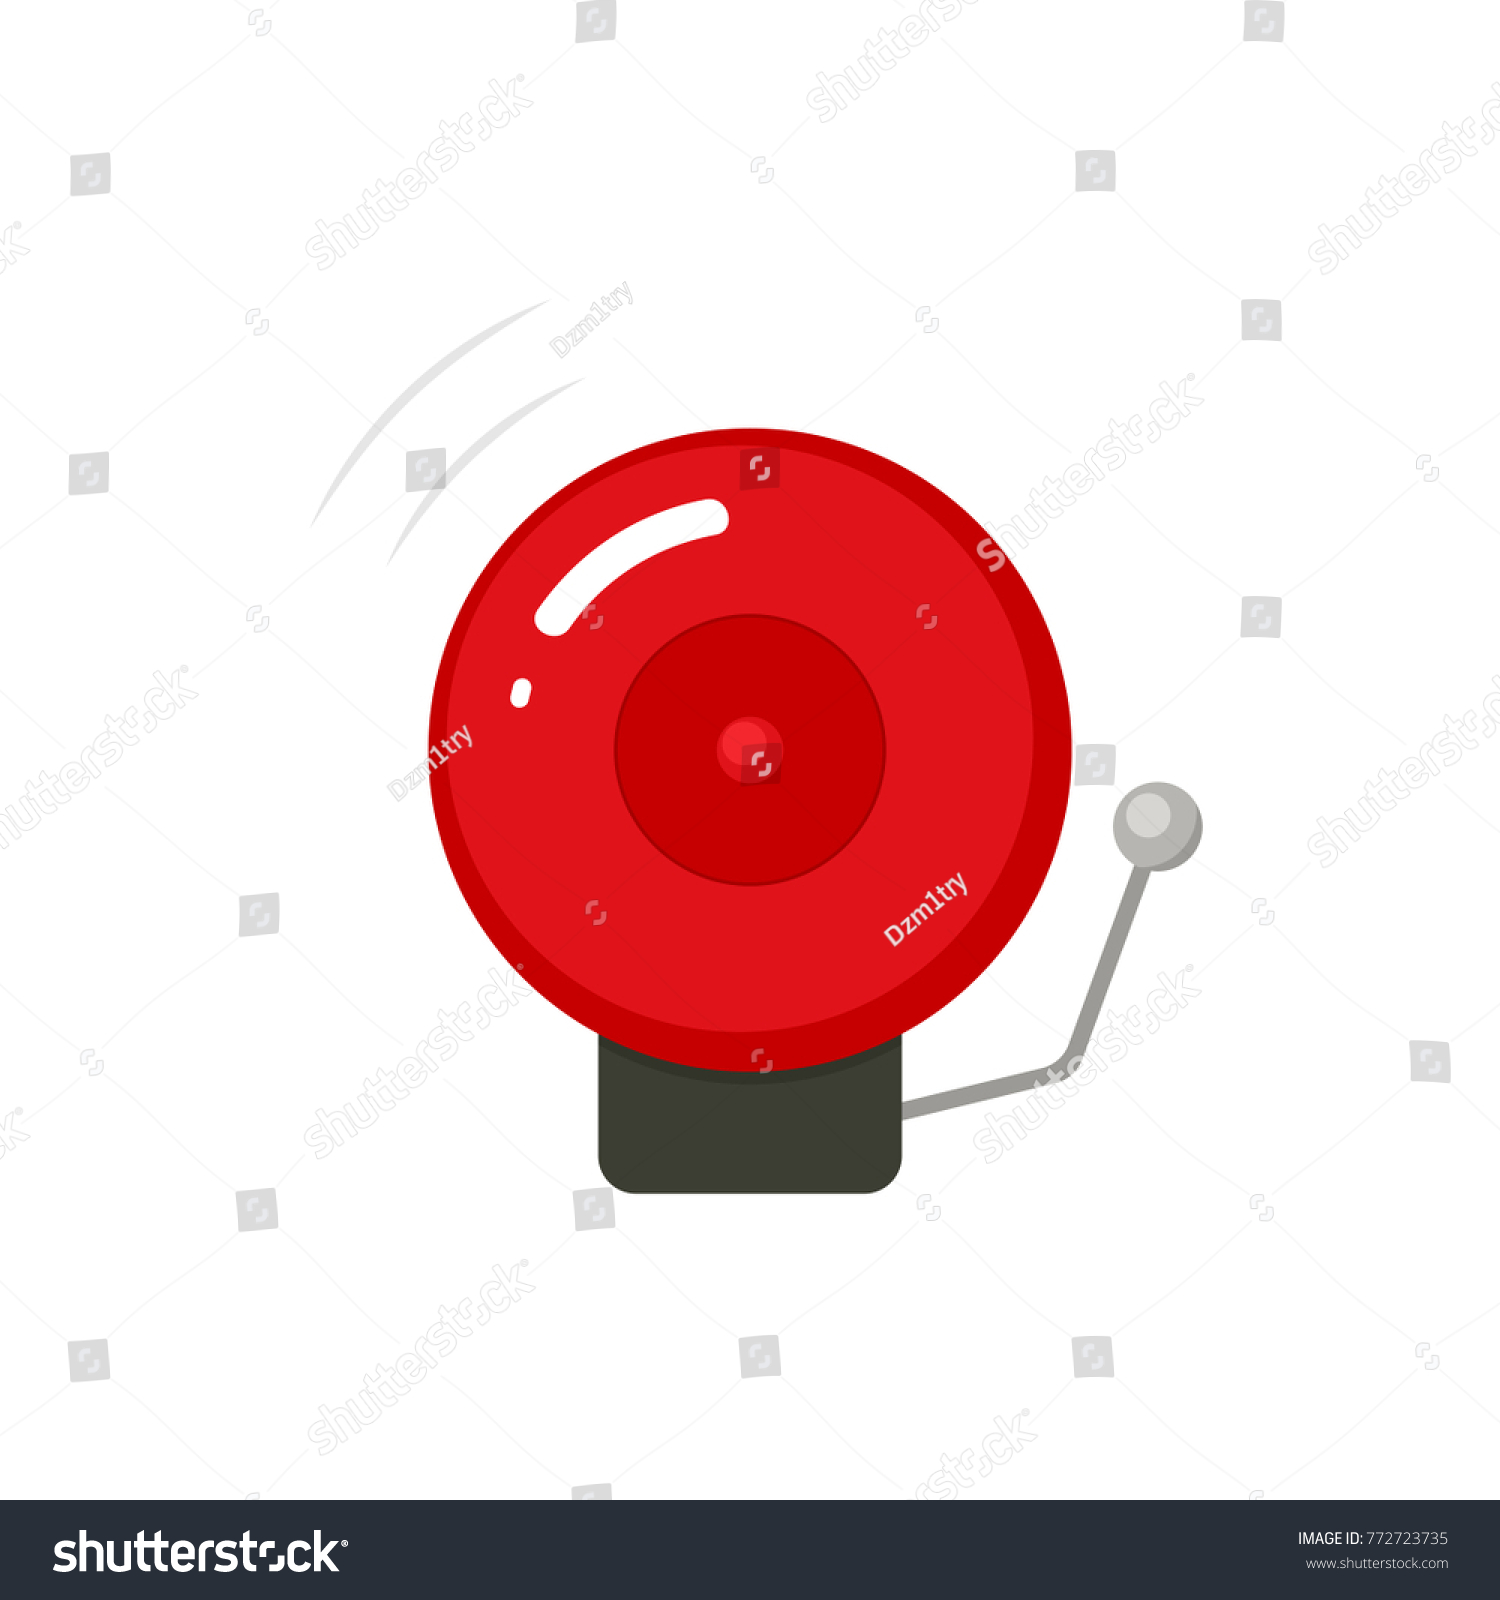 hight resolution of fire alarm bell icon vector clipart image isolated on white background